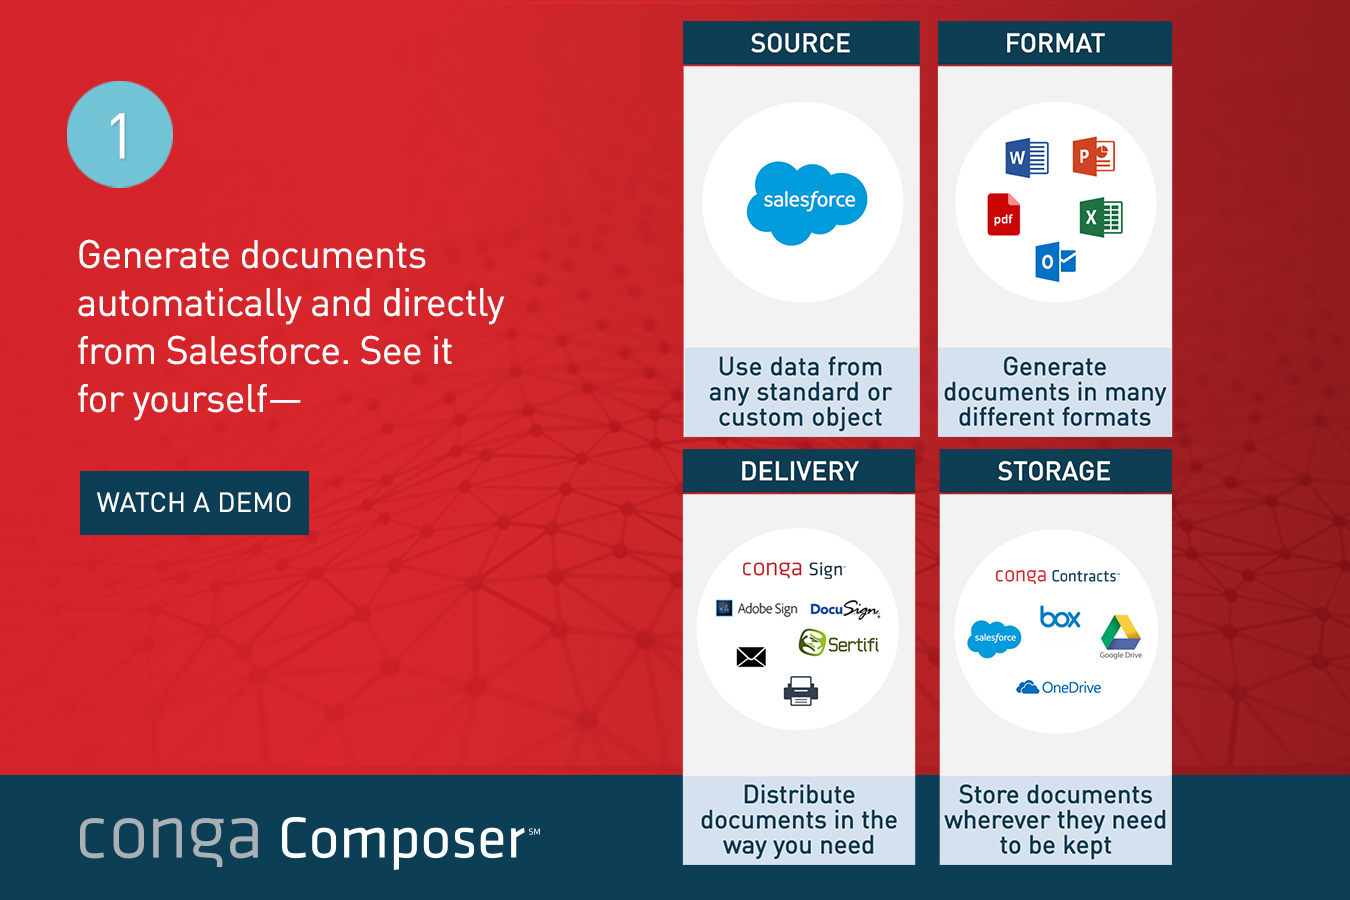 Conga Document Generation Demo - Generate Documents Automatically